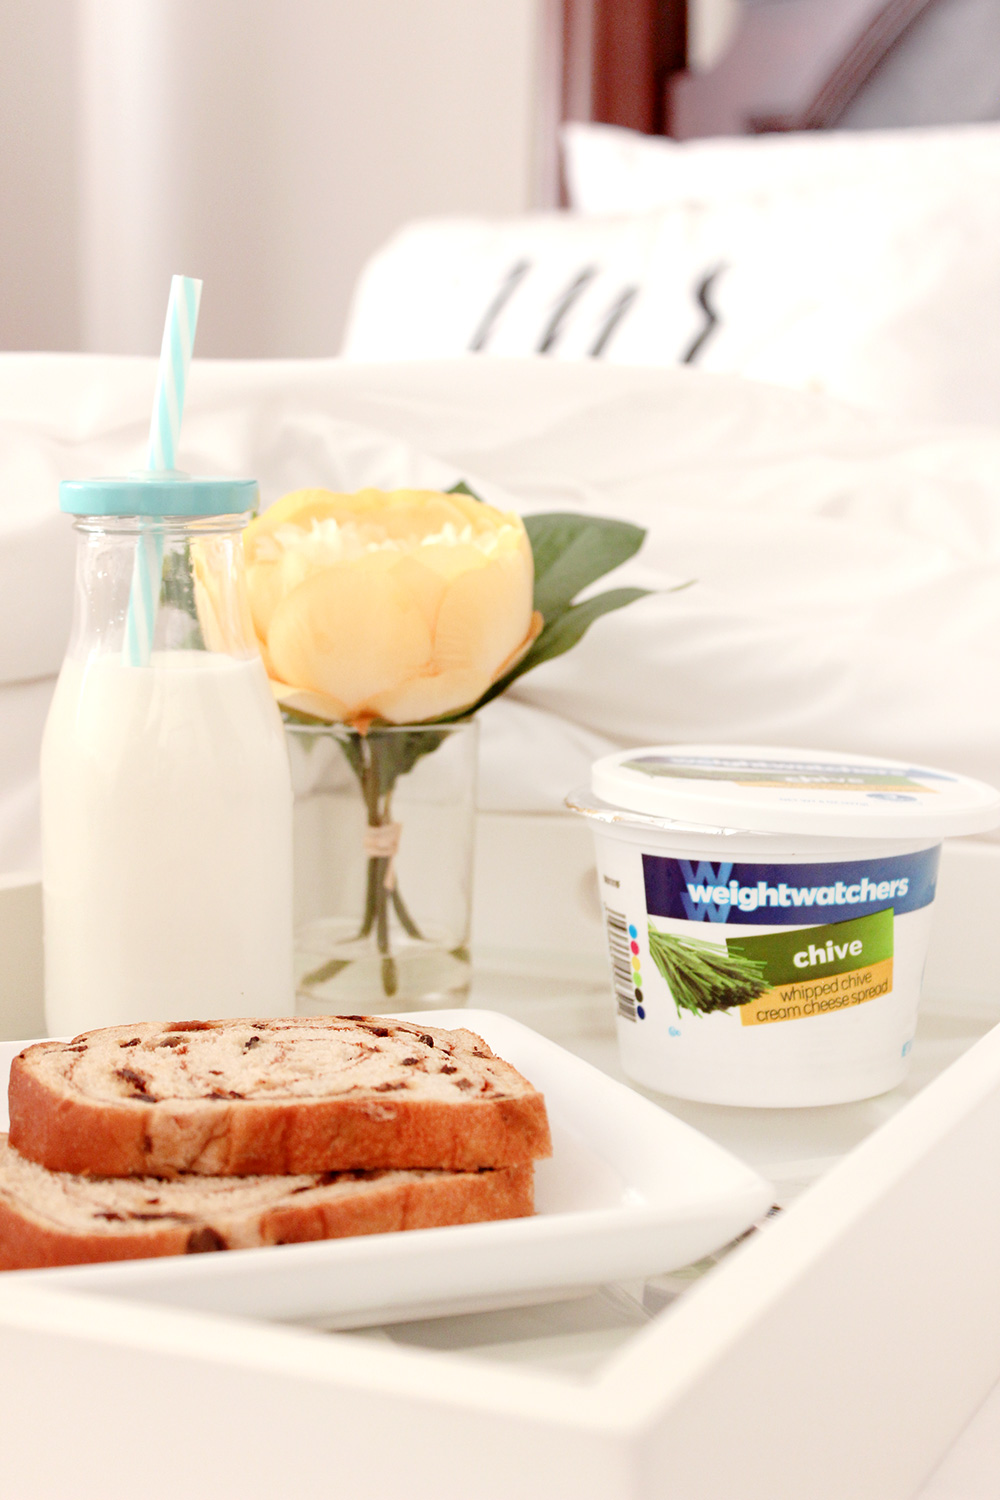 Weight Watchers Whipped Cream Cheese